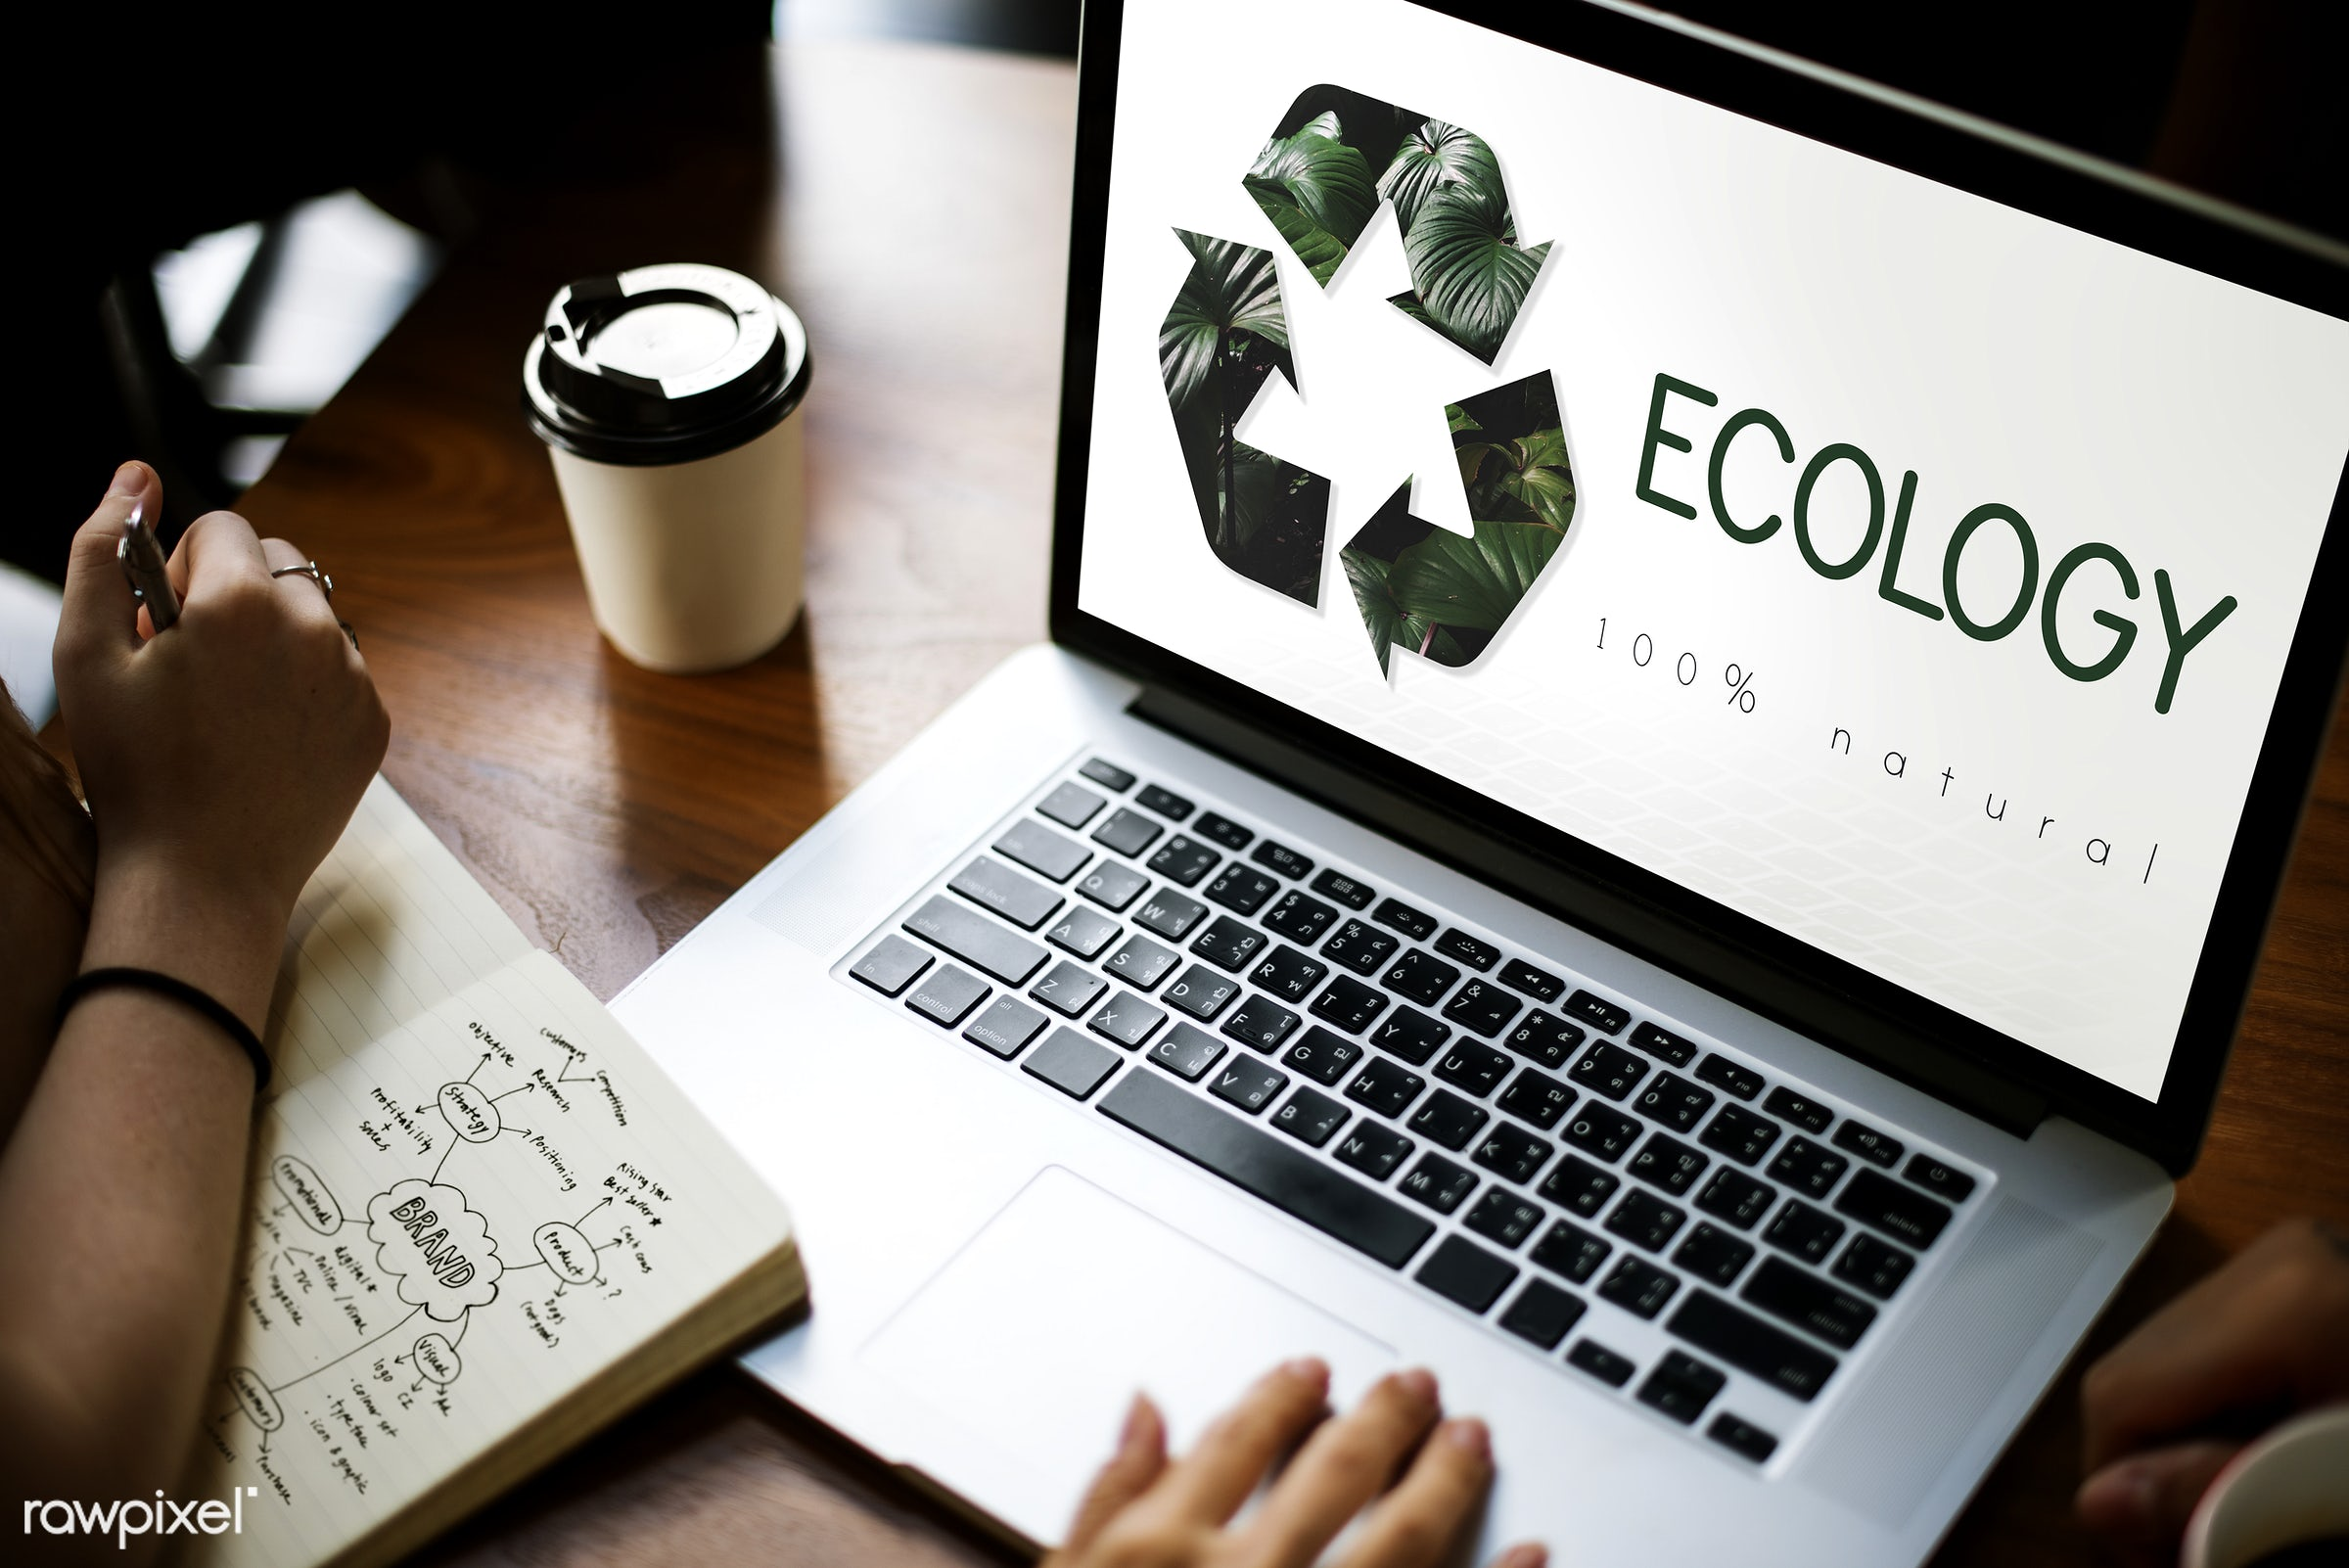 arrows, browsing, coffee cup, conservation, device, digital, digital device, earth, eco friendly, ecology, environment,...